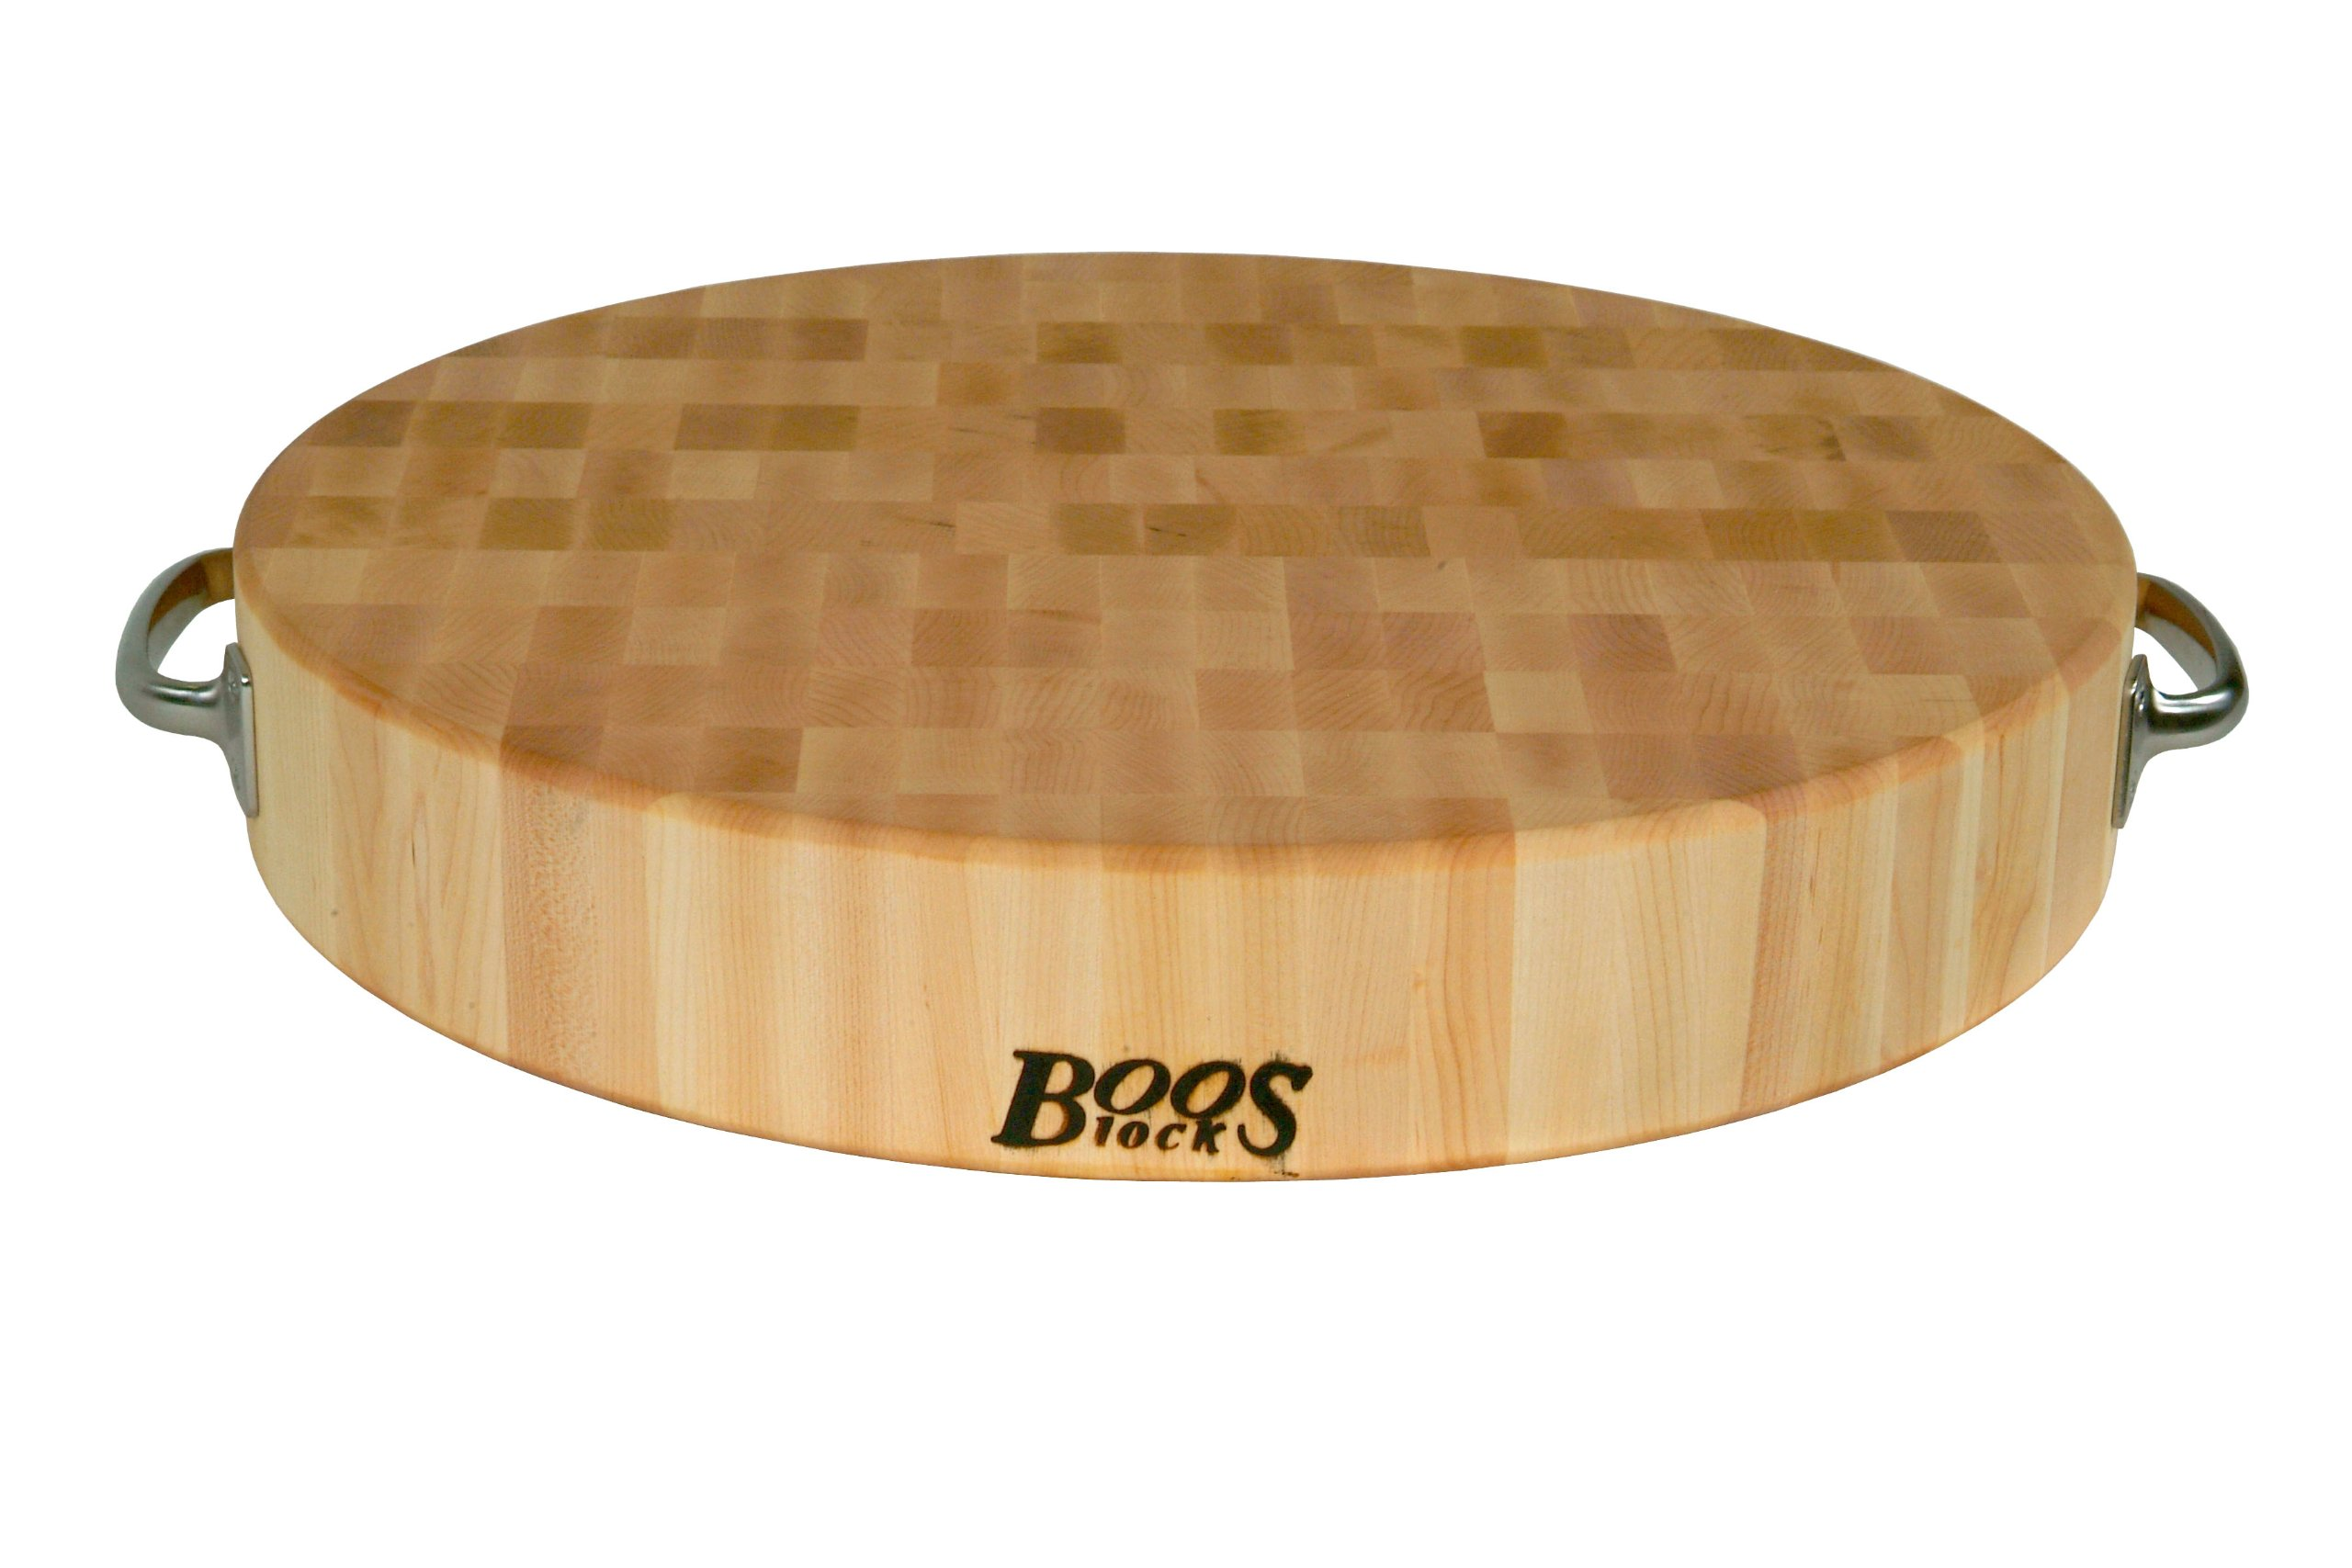 John Boos Block CCB183-R-H Maple Wood End Grain Round Cutting Board with Stainless Steel Handles, 18 Inches Round x 3 Inches Tall